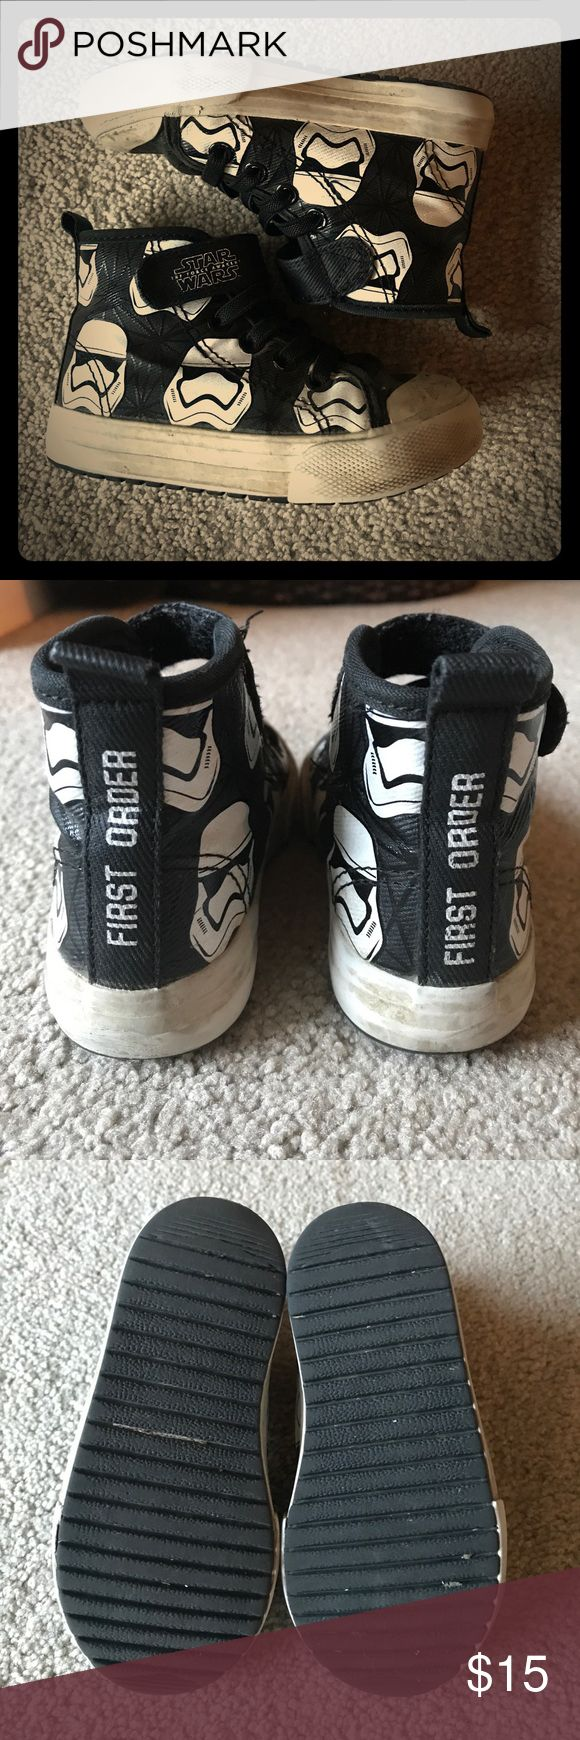 Star Wars First Order Toddler Sneakers H&M toddler sneakers with first order storm trooper design. Good condition. H&M Shoes Sneakers